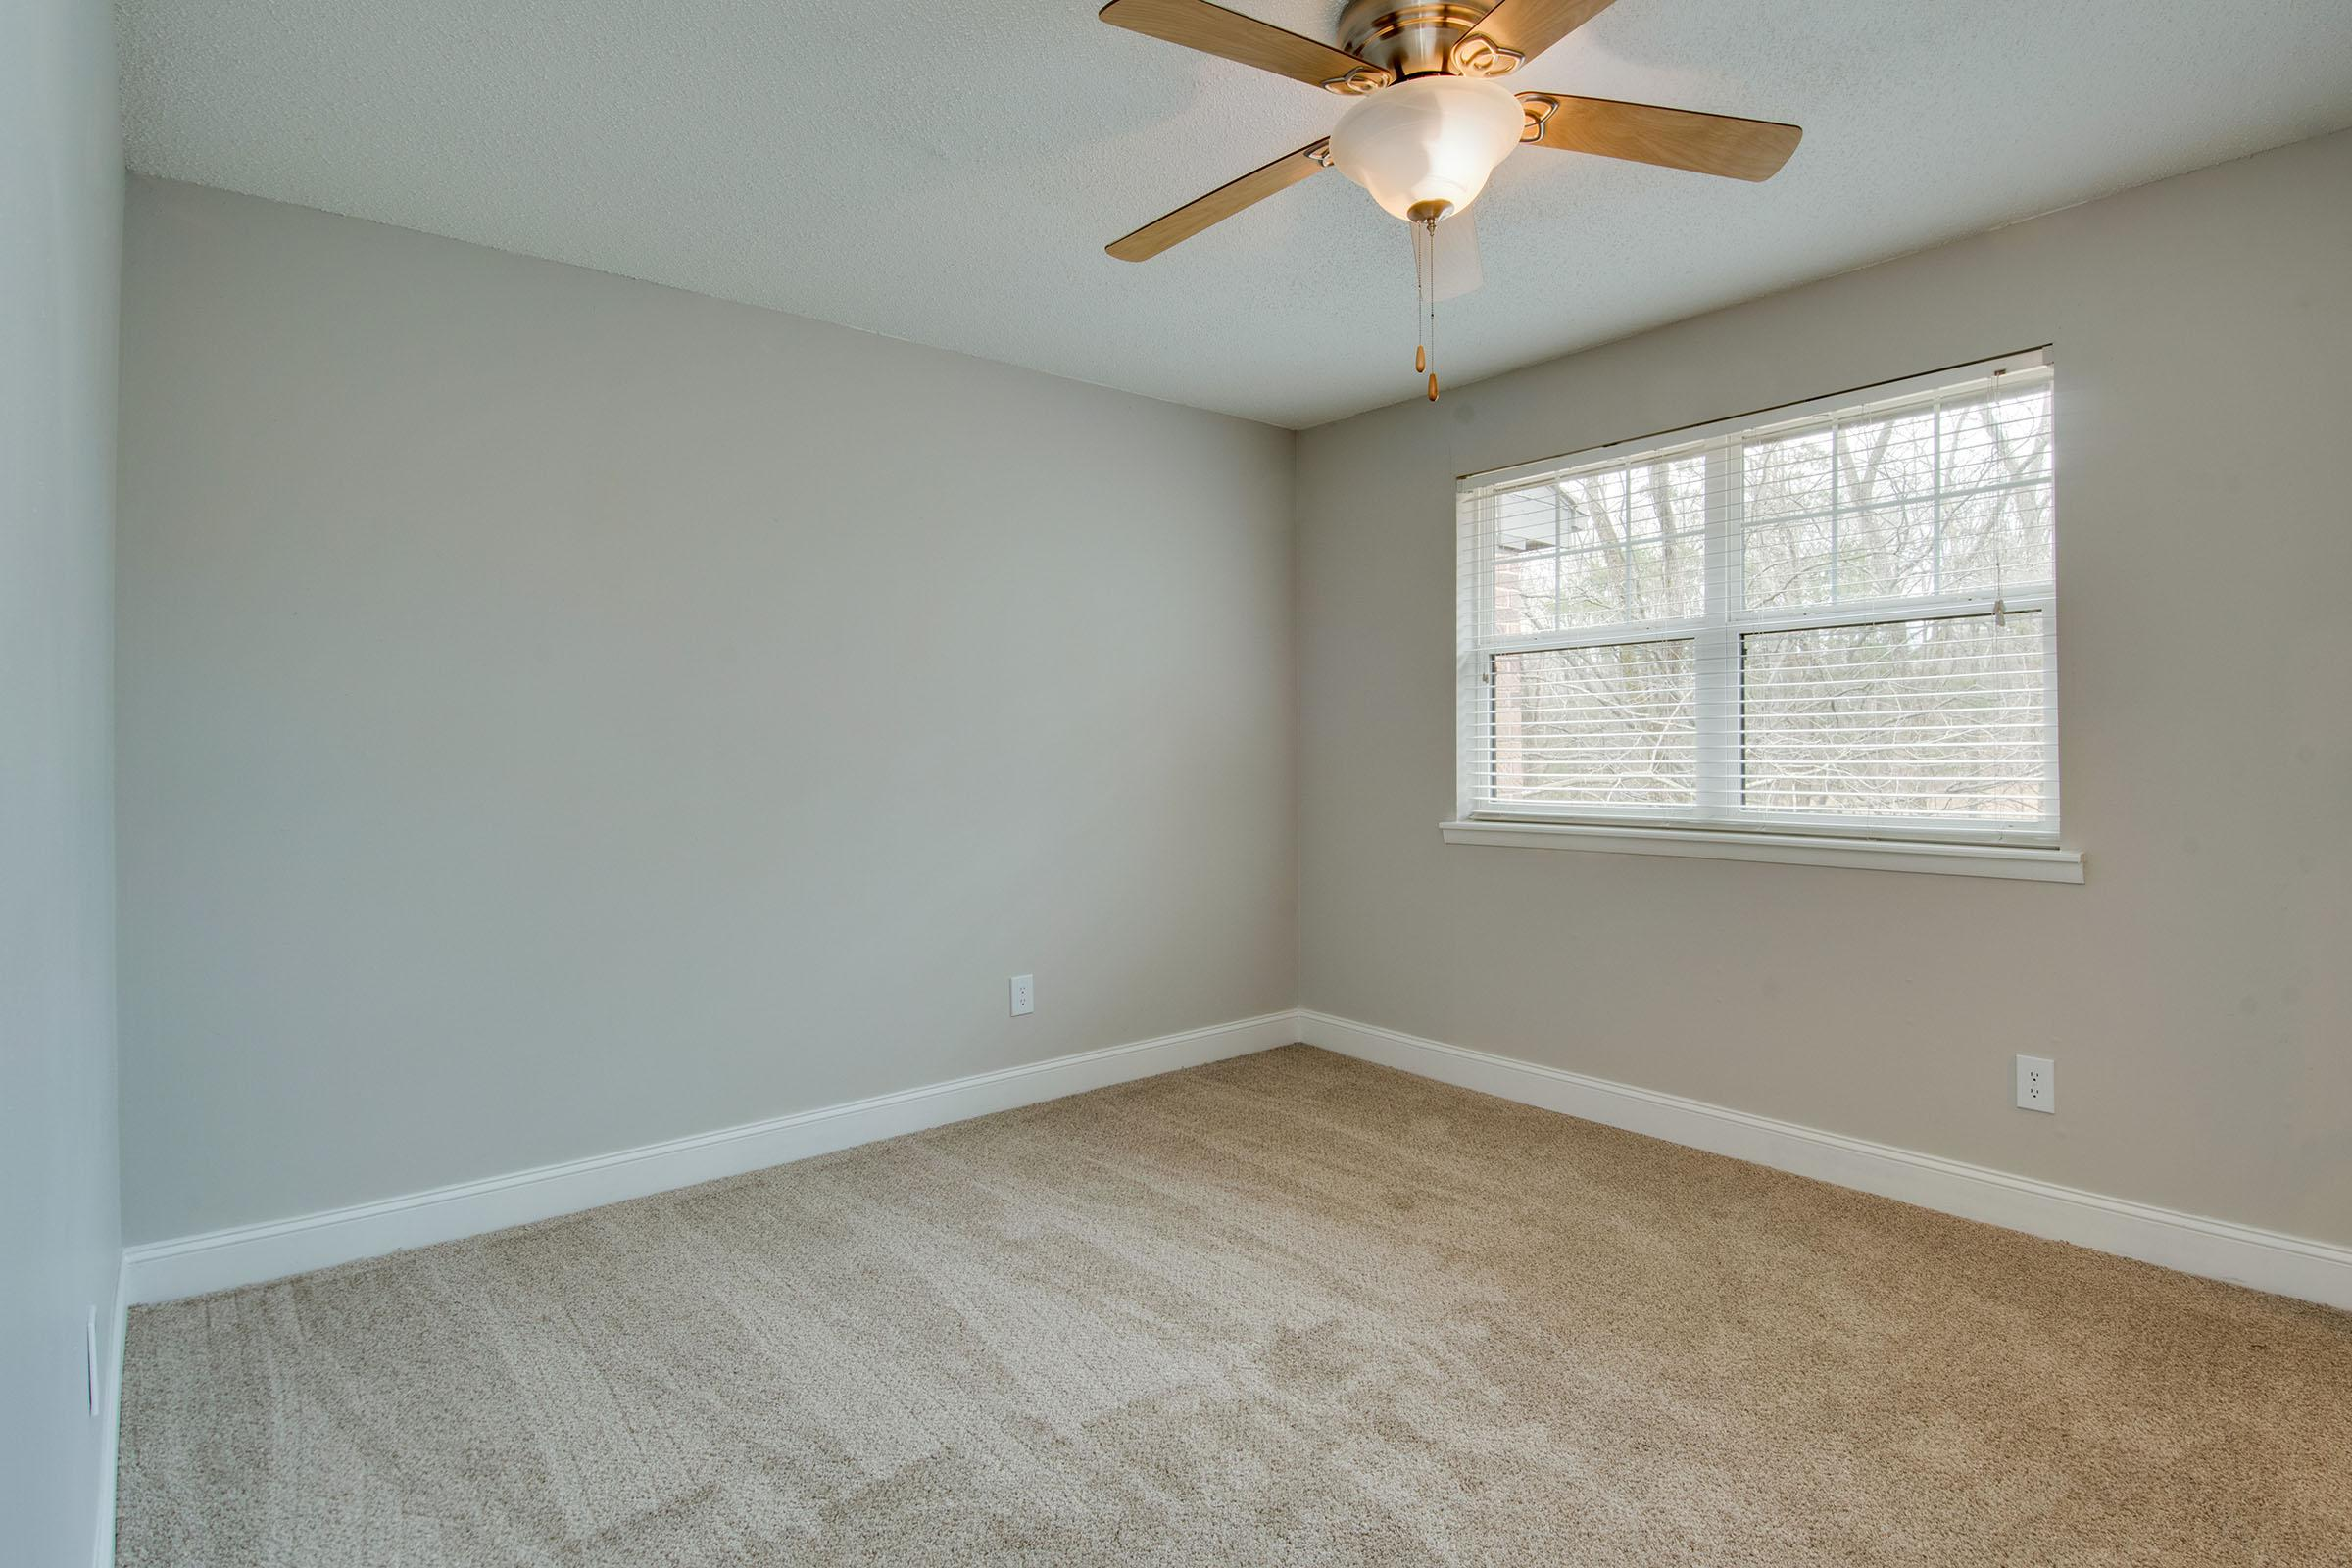 Bedroom with ceiling fans